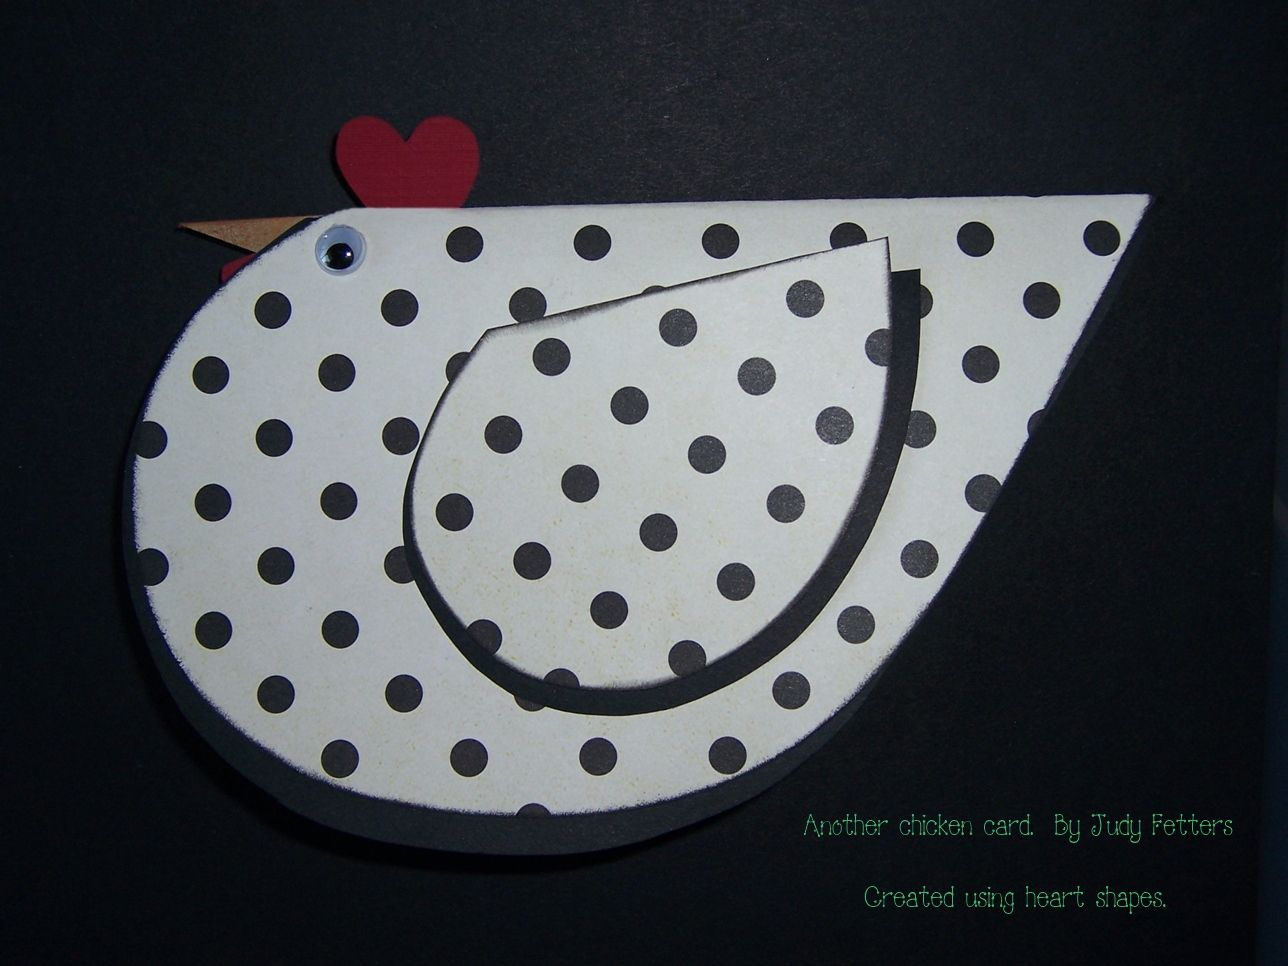 My version of the chicken card I saw on Pinterest.